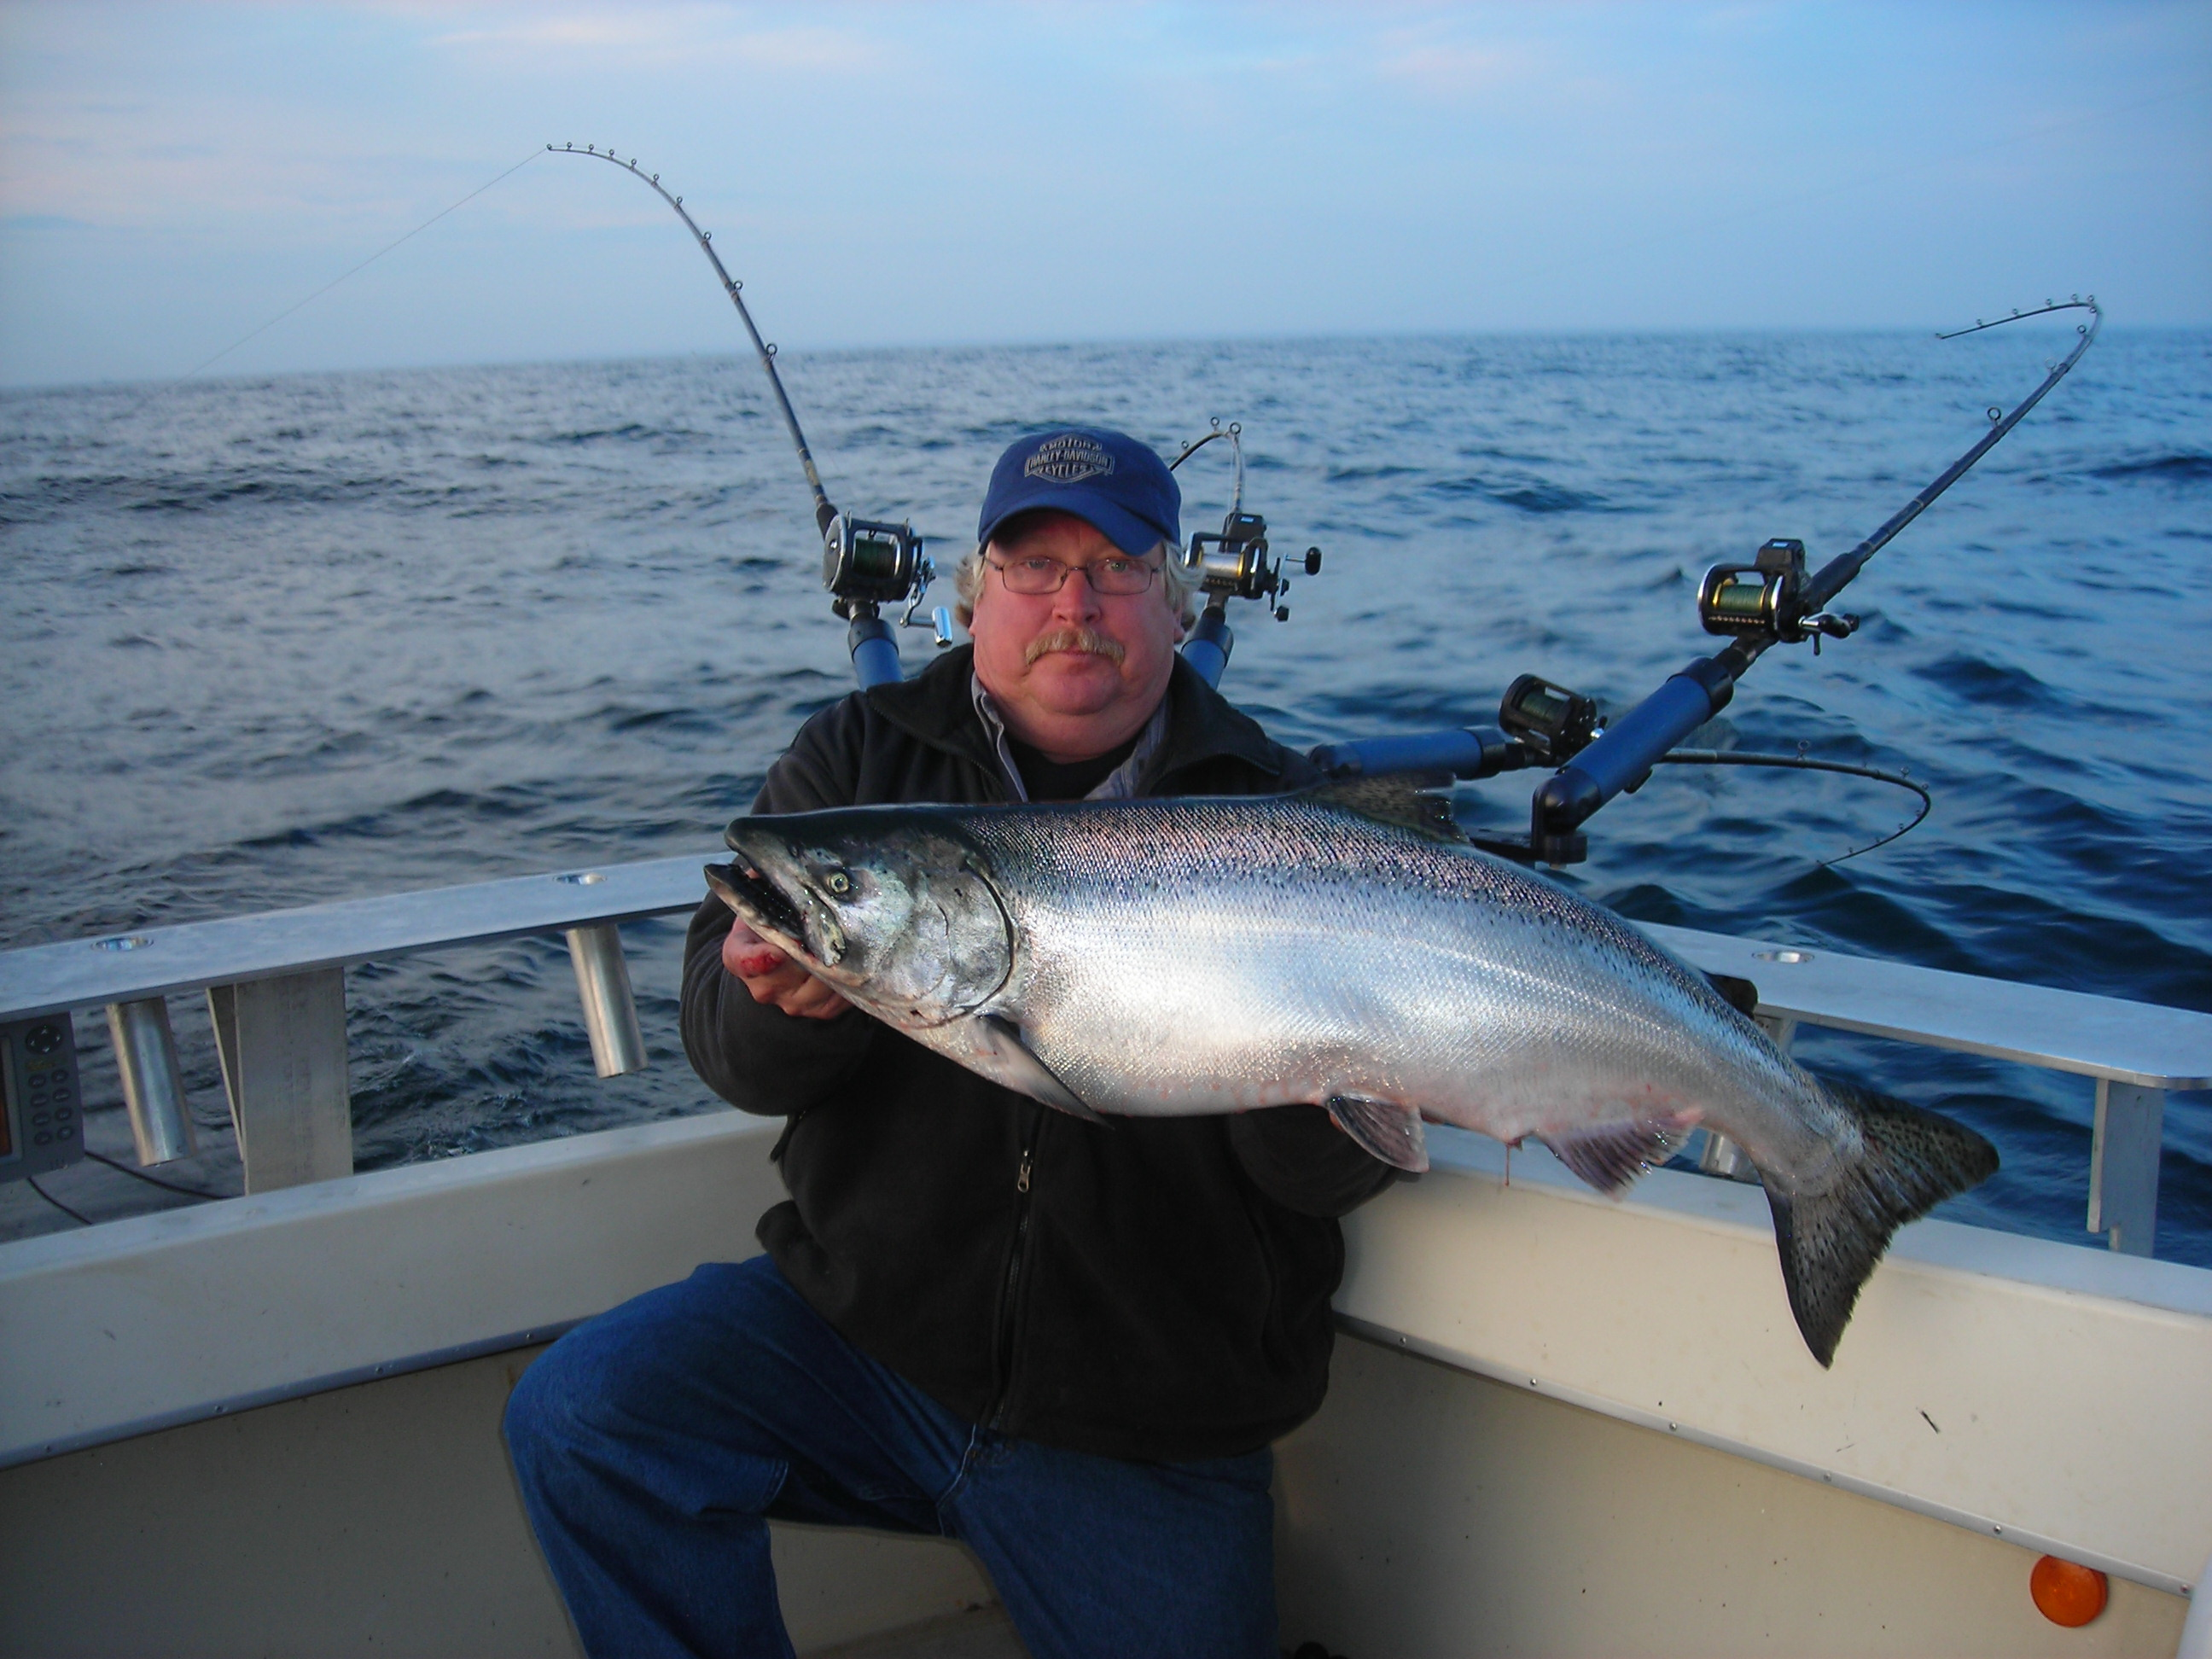 Why knot charters lake michigan salmon fishing algoma wi for Algoma fishing charters